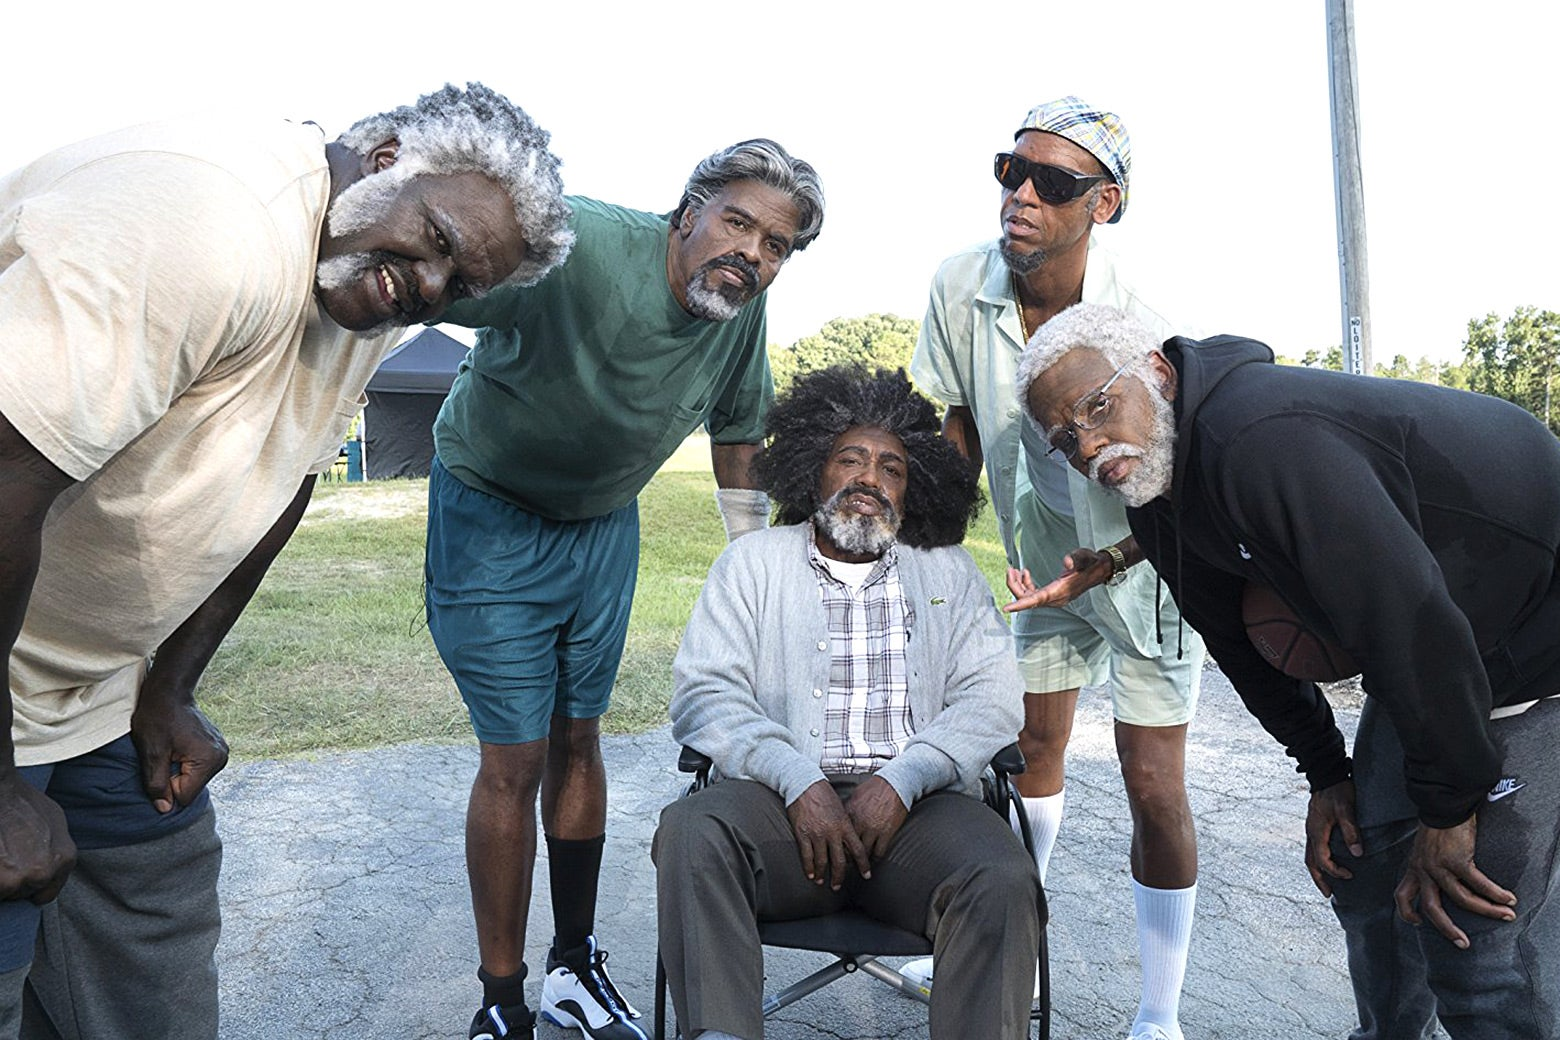 Shaquille O'Neal, Chris Webber, Nate Robinson, Reggie Miller, and Kyrie Irving in Uncle Drew.